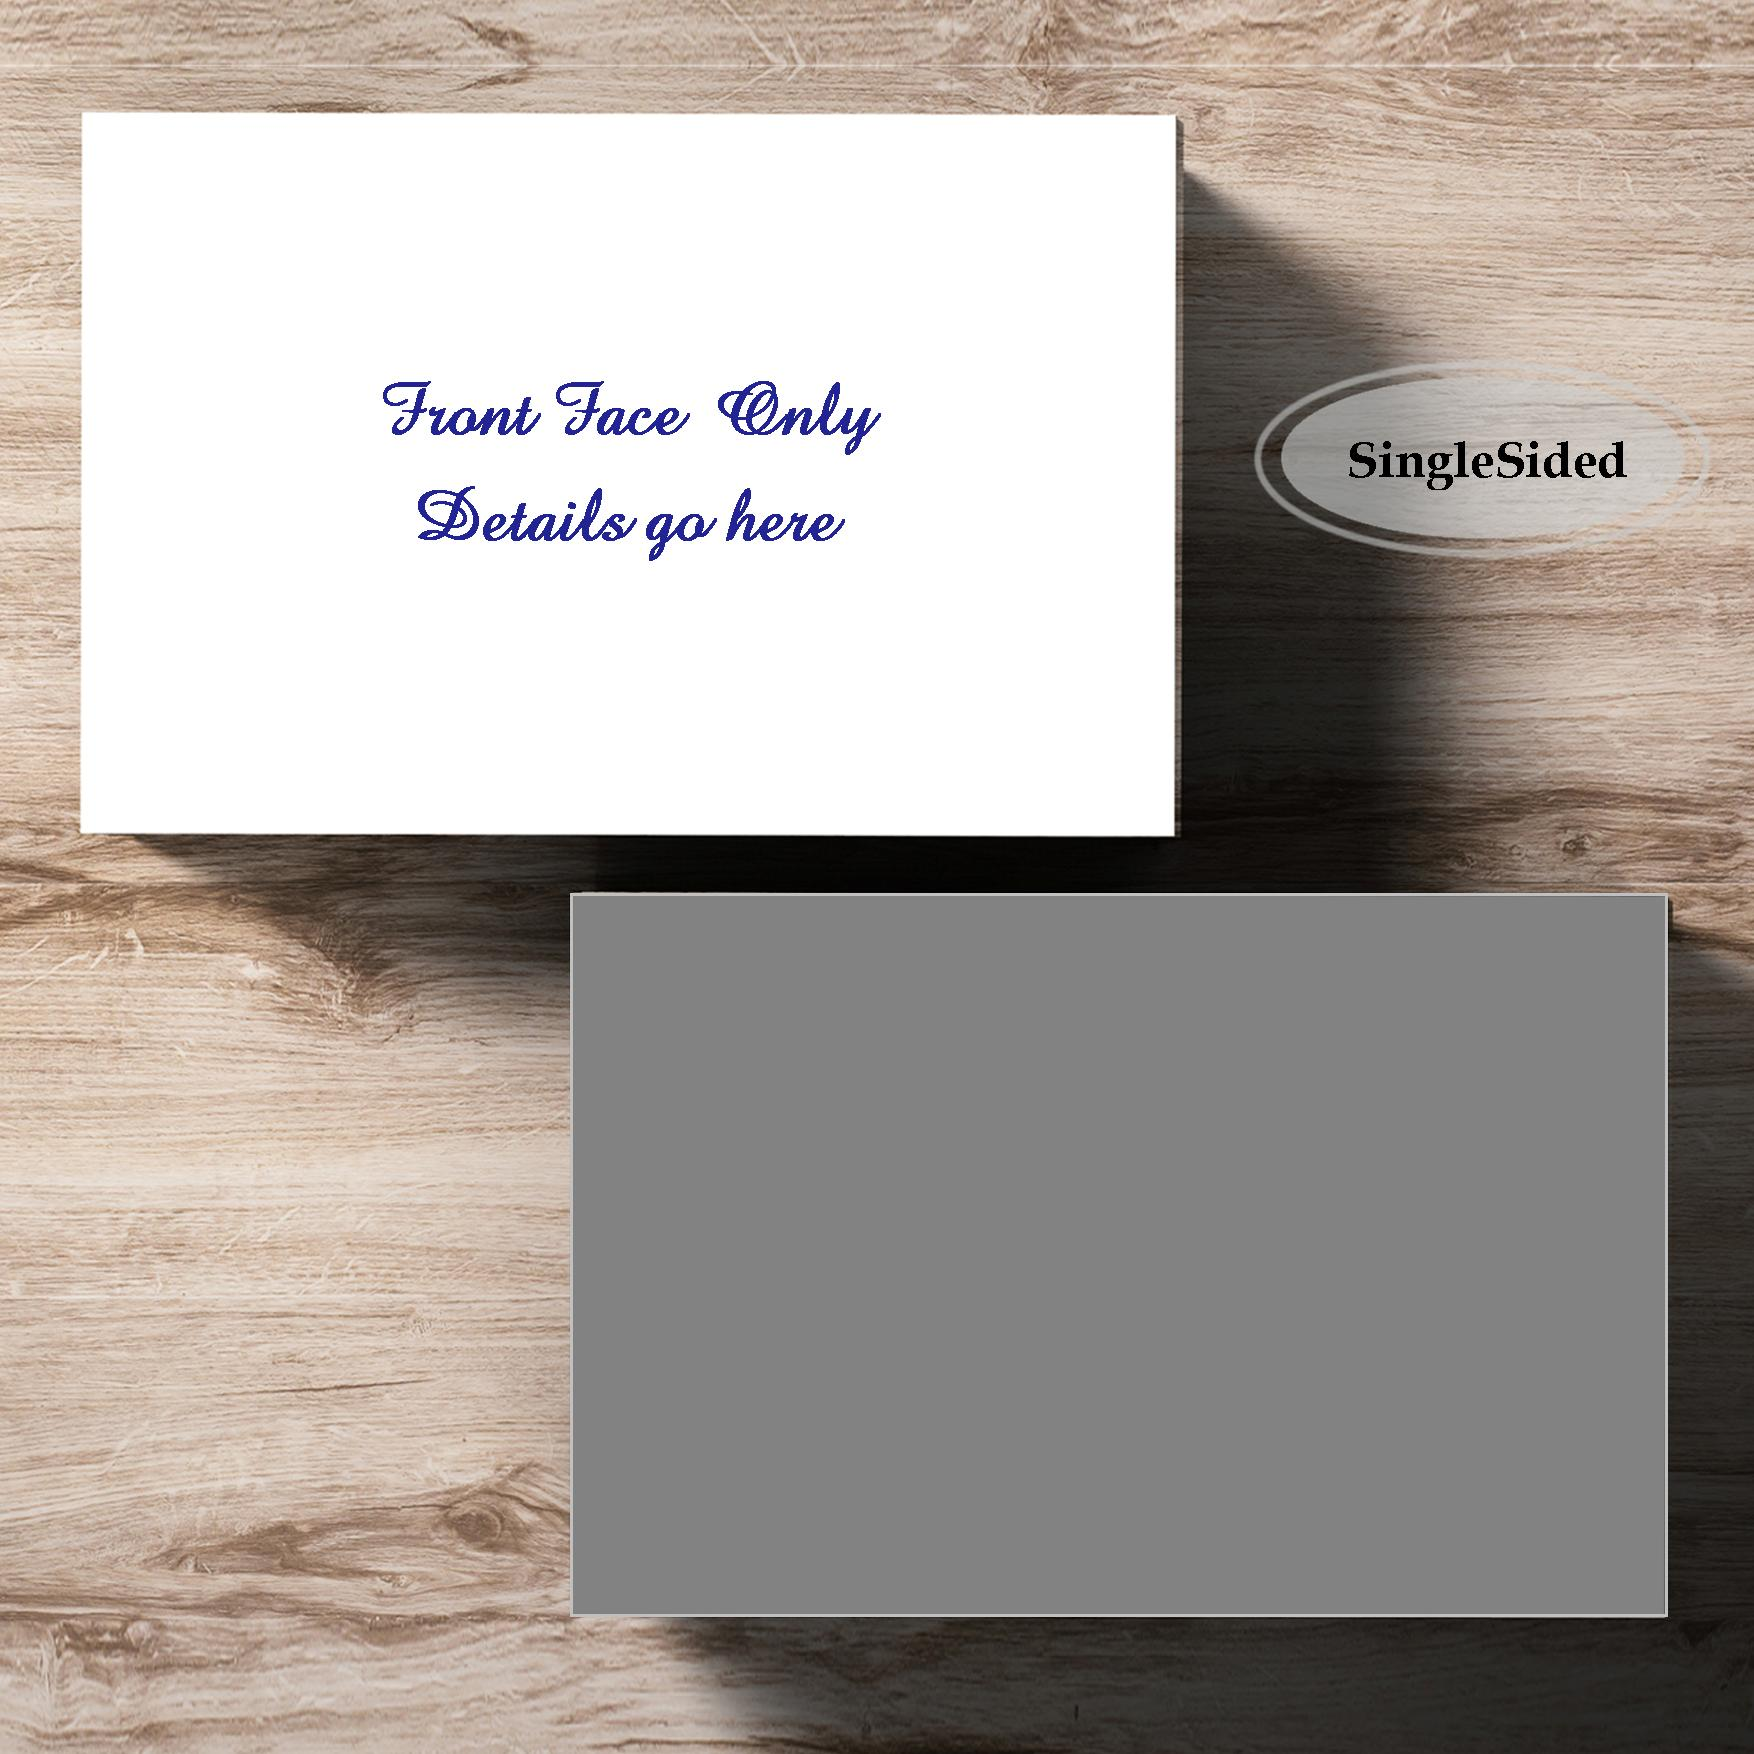 Personalised Premium Business Cards, colour print on 330gsm cardstock.